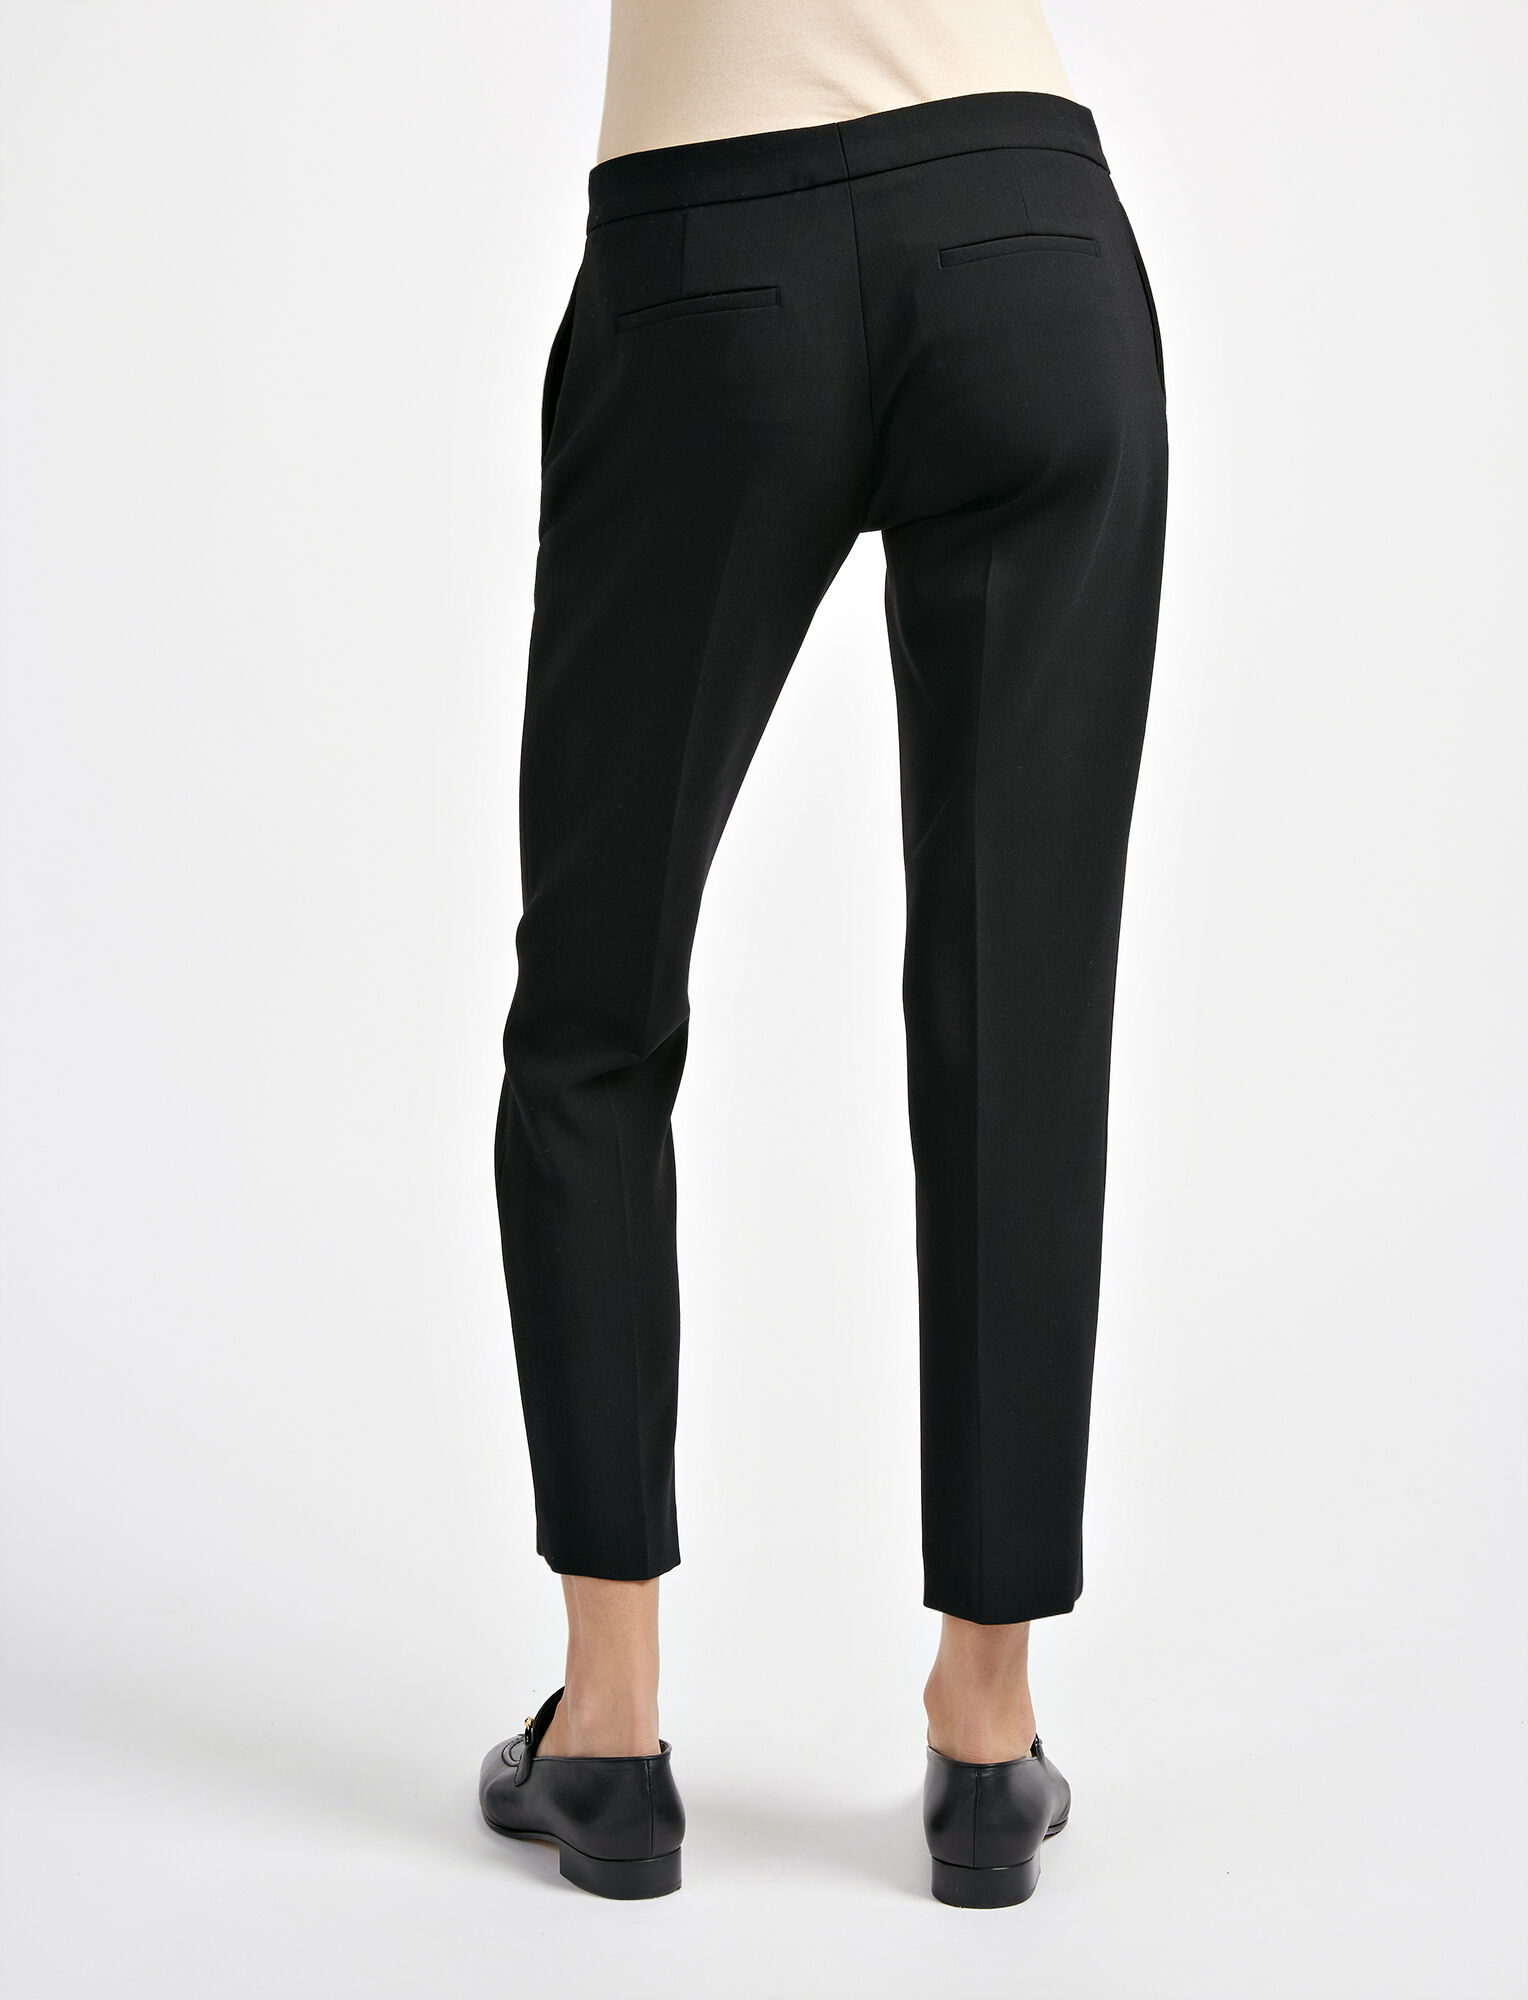 Joseph, Stretch Wool Finley Trouser, in BLACK